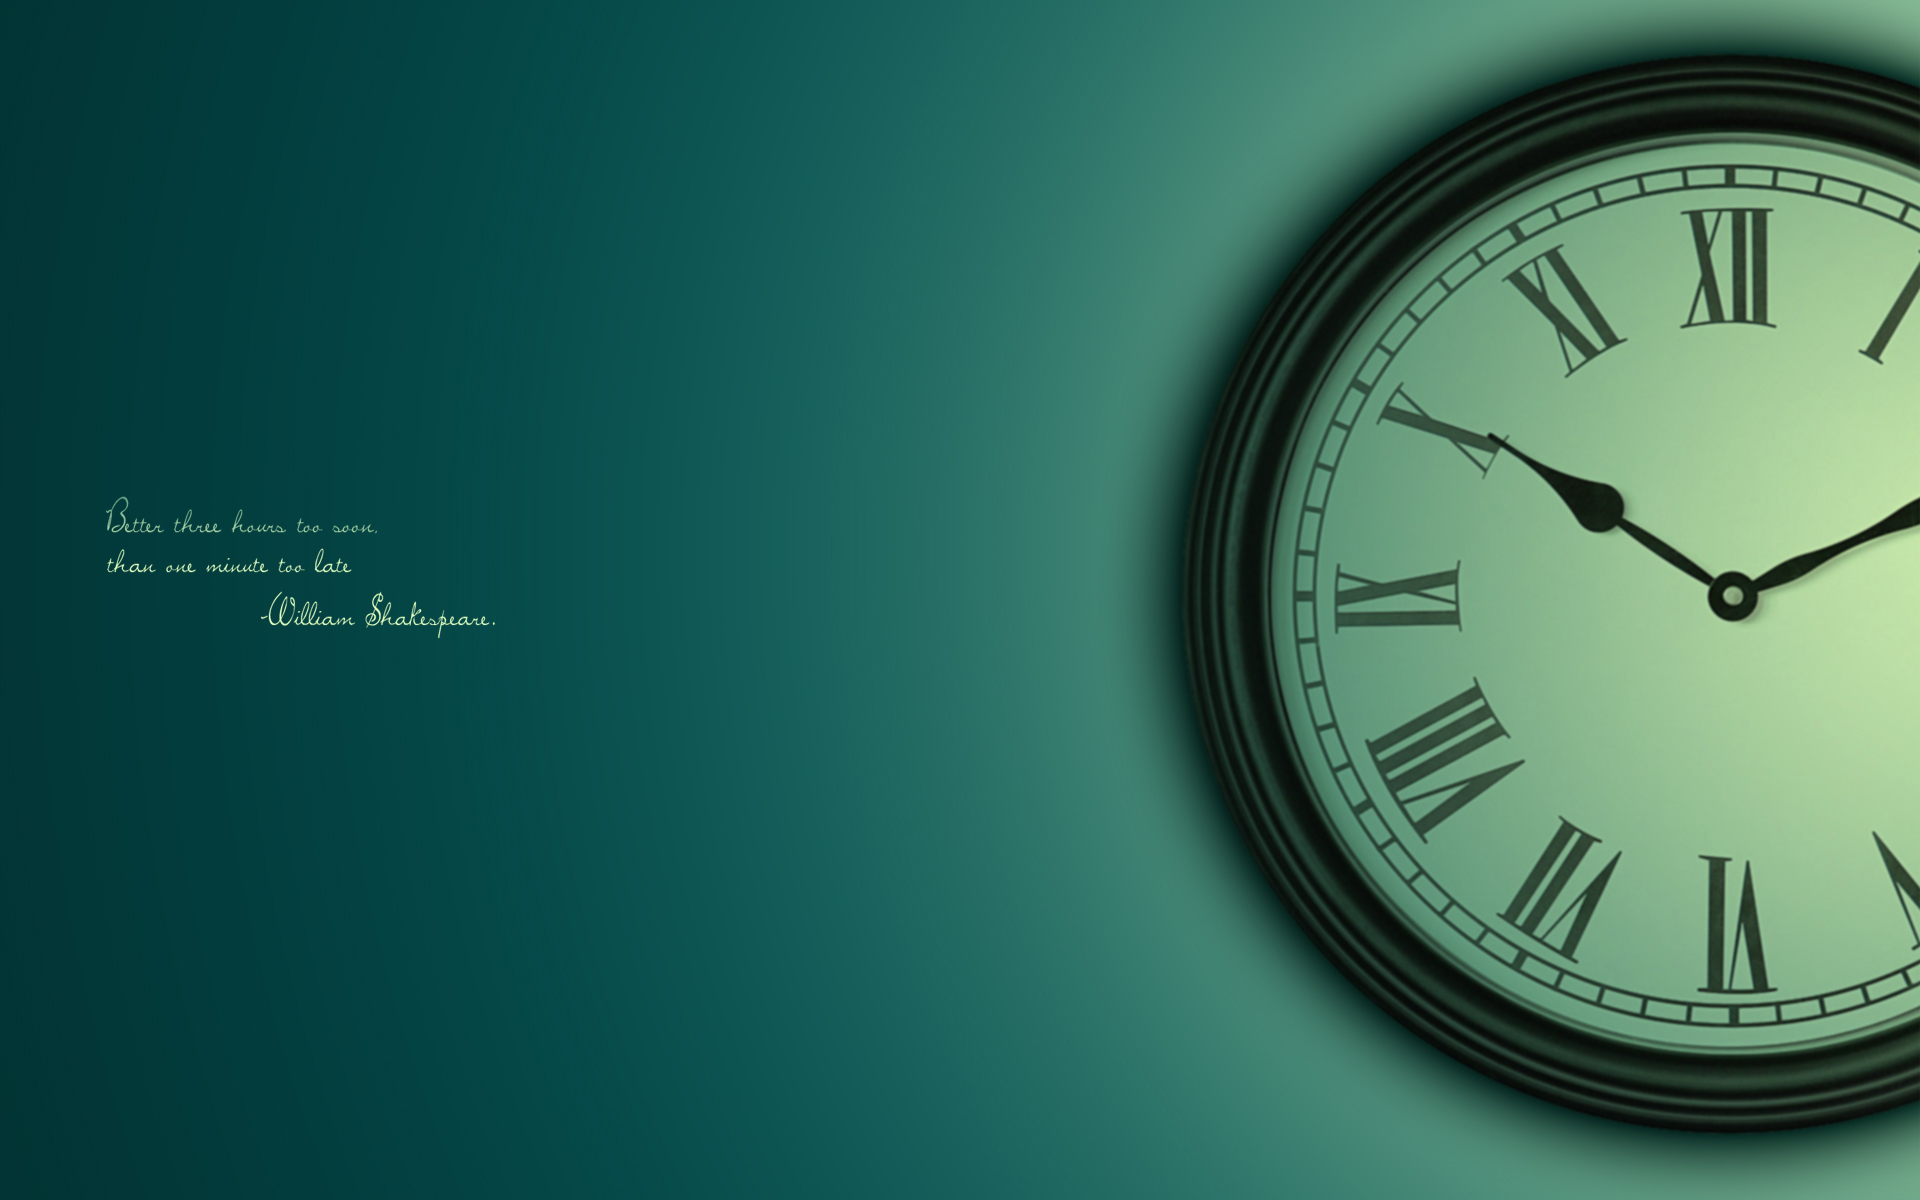 MB Clock HD Wallpaper | Theme Bin - Customization, HD Wallpapers